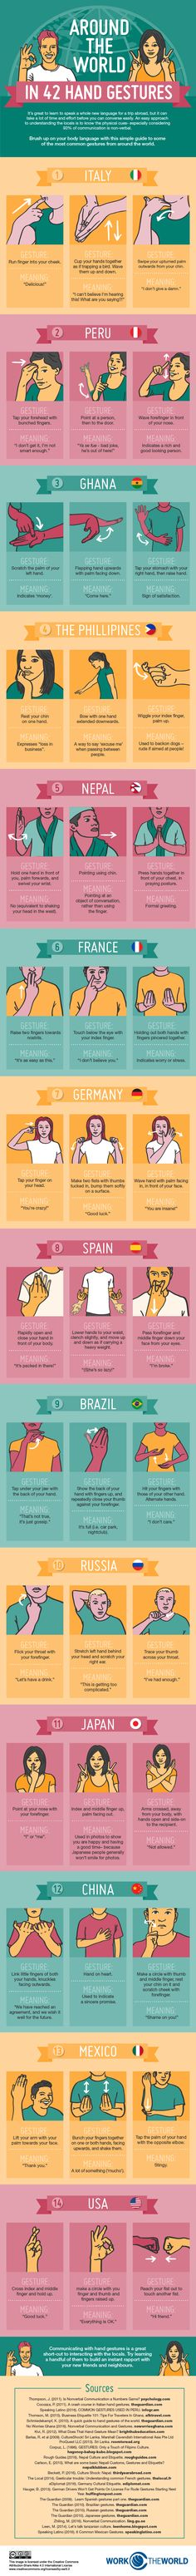 AROUND THE WORLD IN 42 HAND GESTURES - This could save you from some awkward situations.